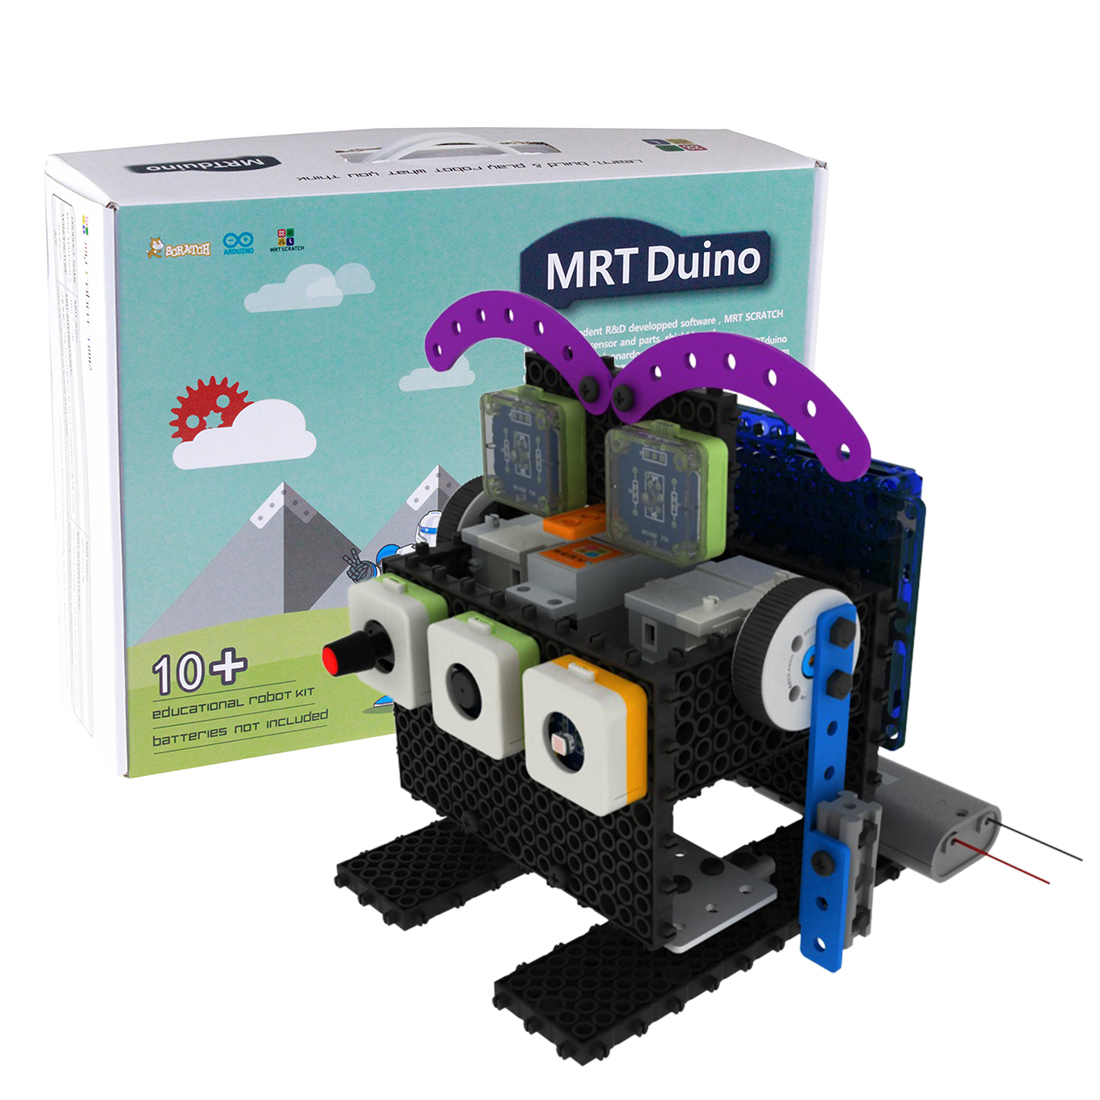 My Robot Time MRT-Duino 1 Robots Building Block Kit Assembly Programmable Educational Robot Toy For 12-15 Years Old